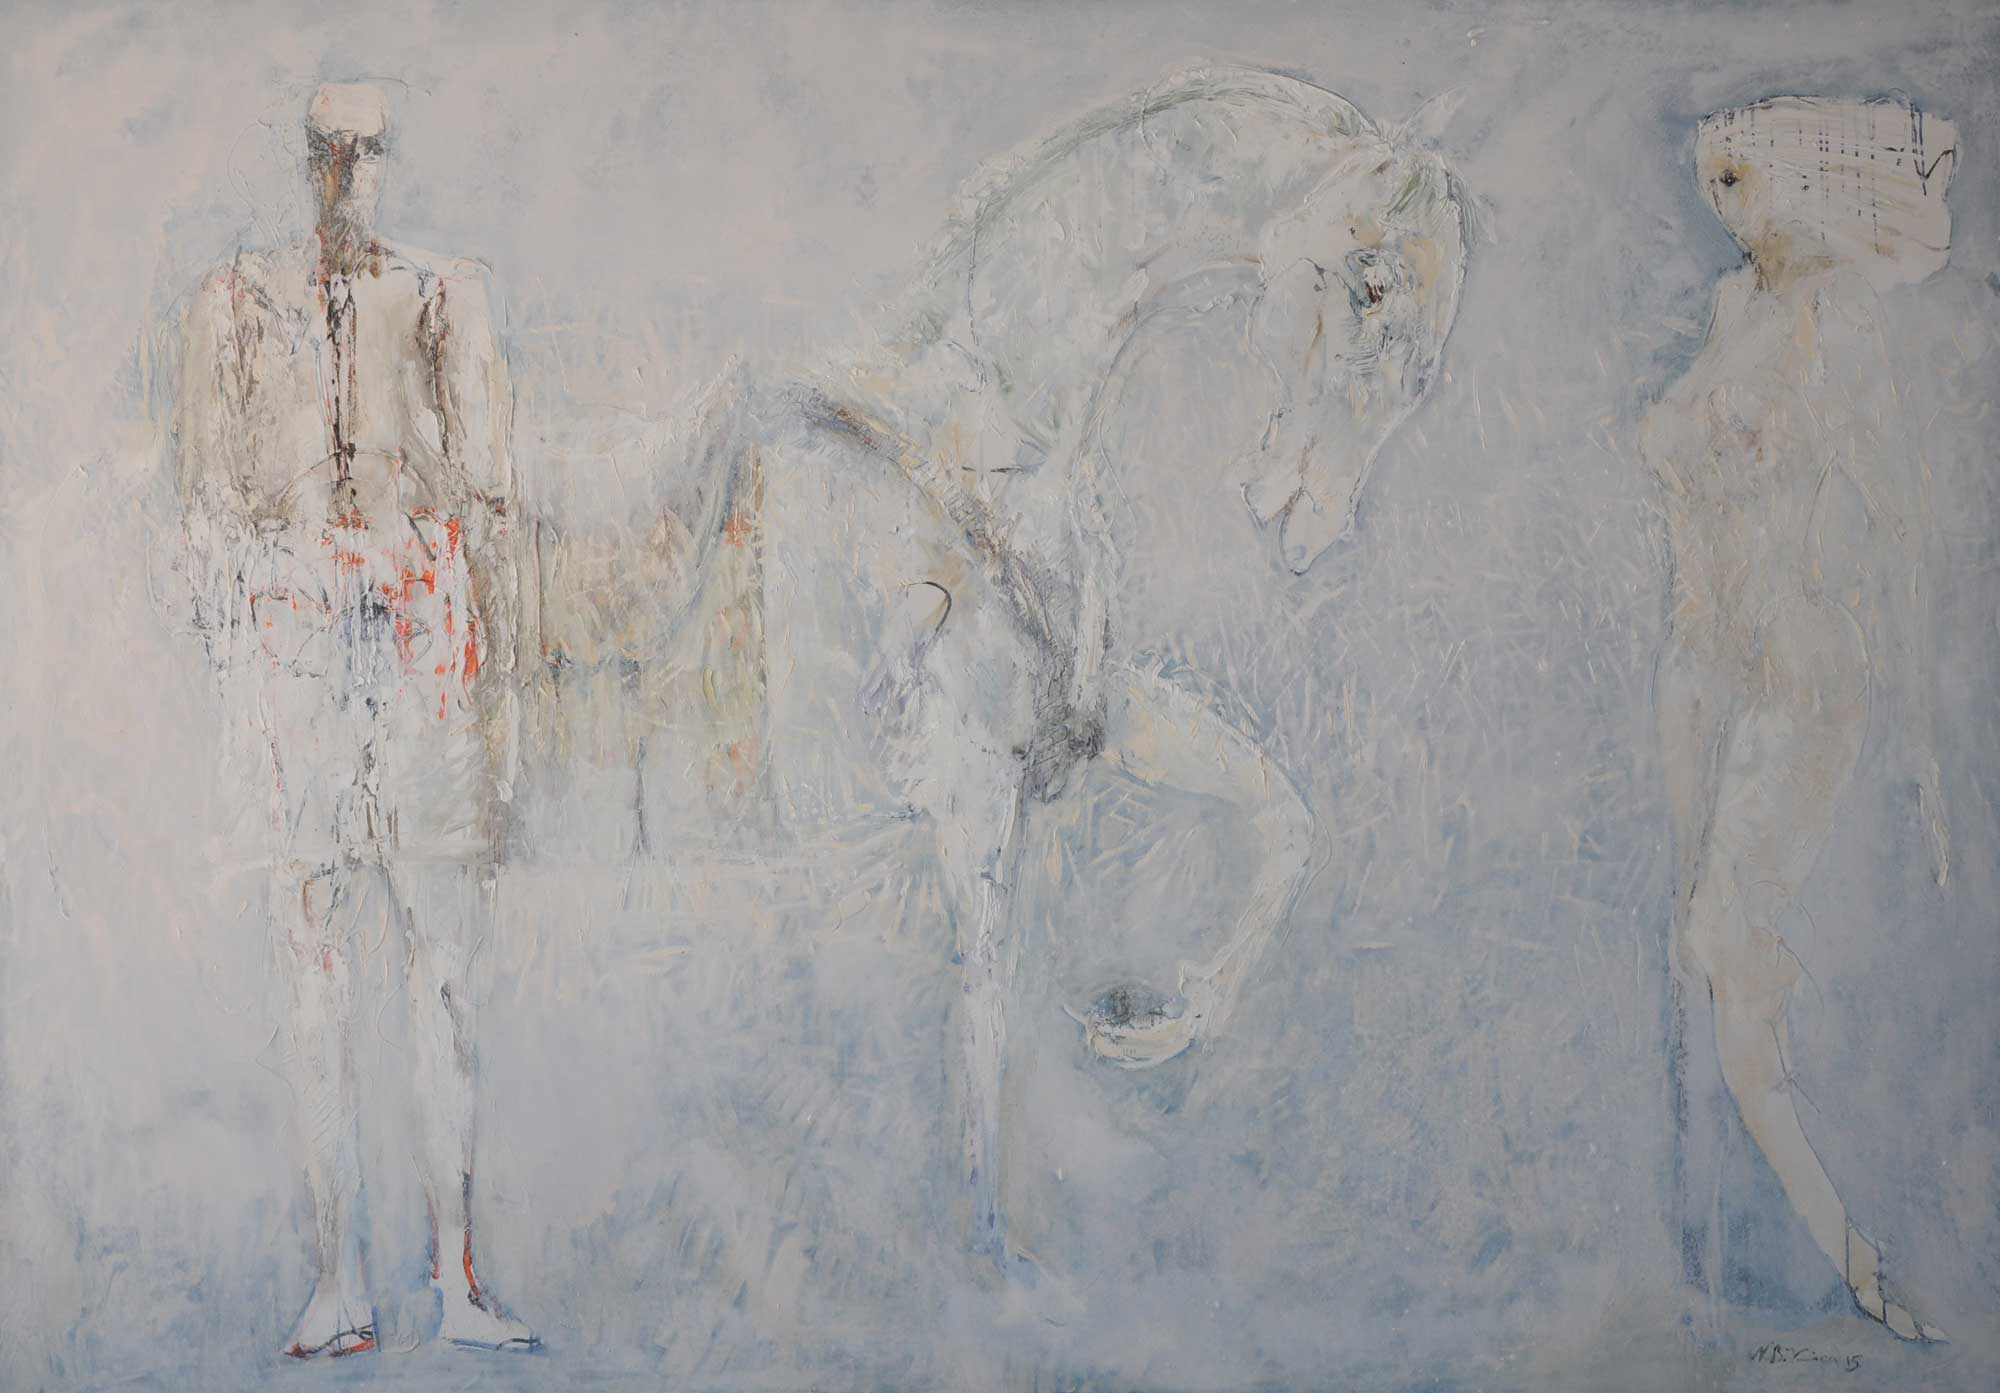 Nevzat Bejtuli KICA, Sudden Meeting, 2015, oil on canvas, 195 x 285 cm